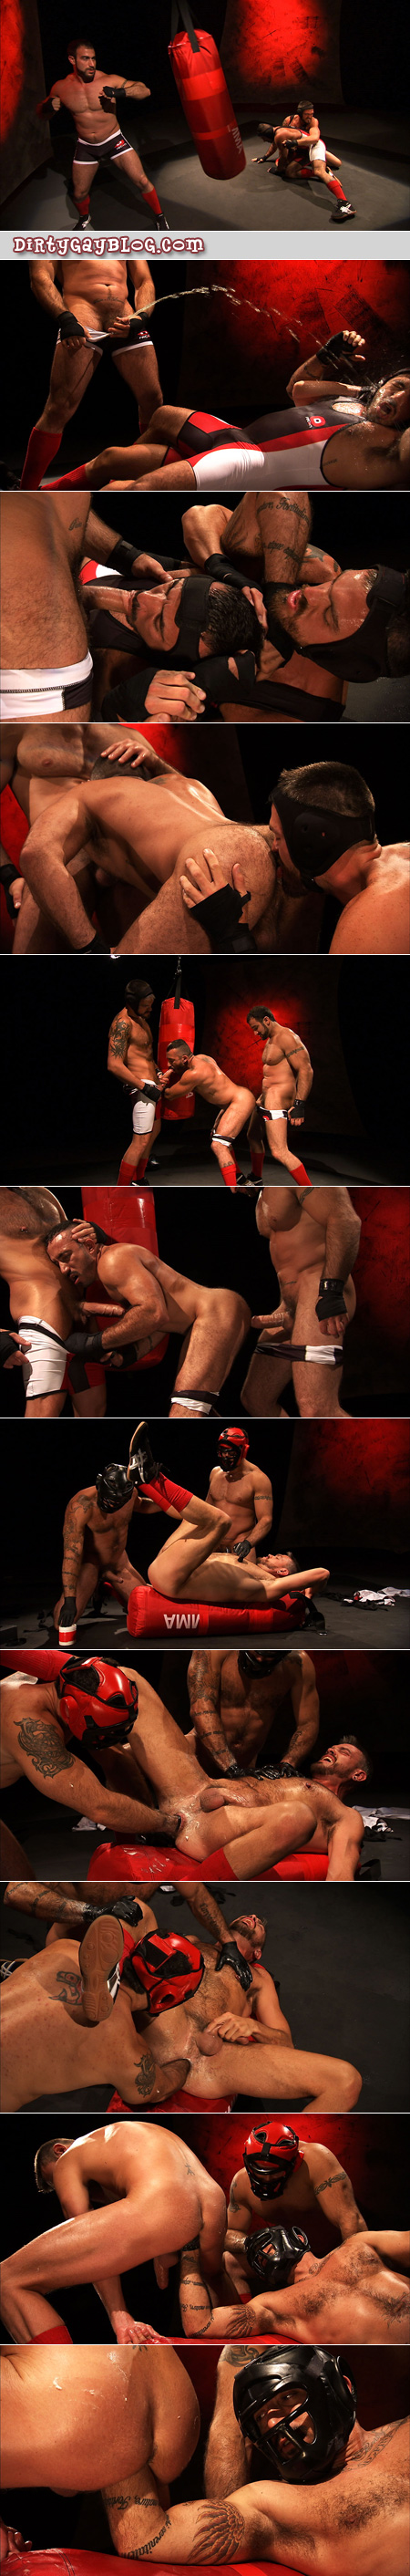 Three hairy mature men have gay sex in sportswear, including boxing gear, punch fucking, watersports and getting filled from both ends.